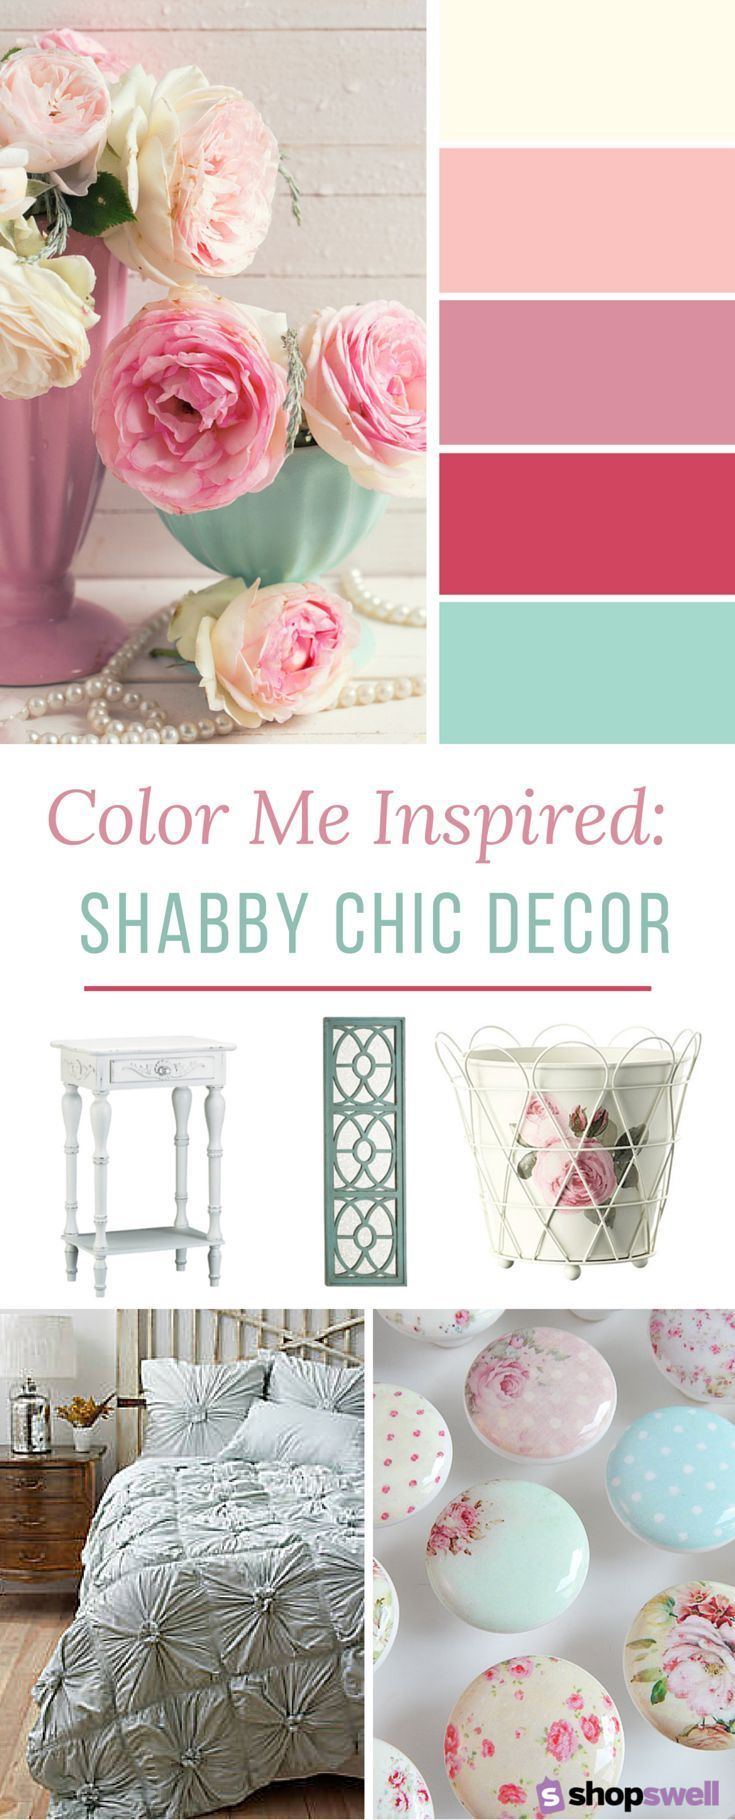 Photo of 20 Home Decor Essentials for the Shabby Chic Bedroom | Shopswell